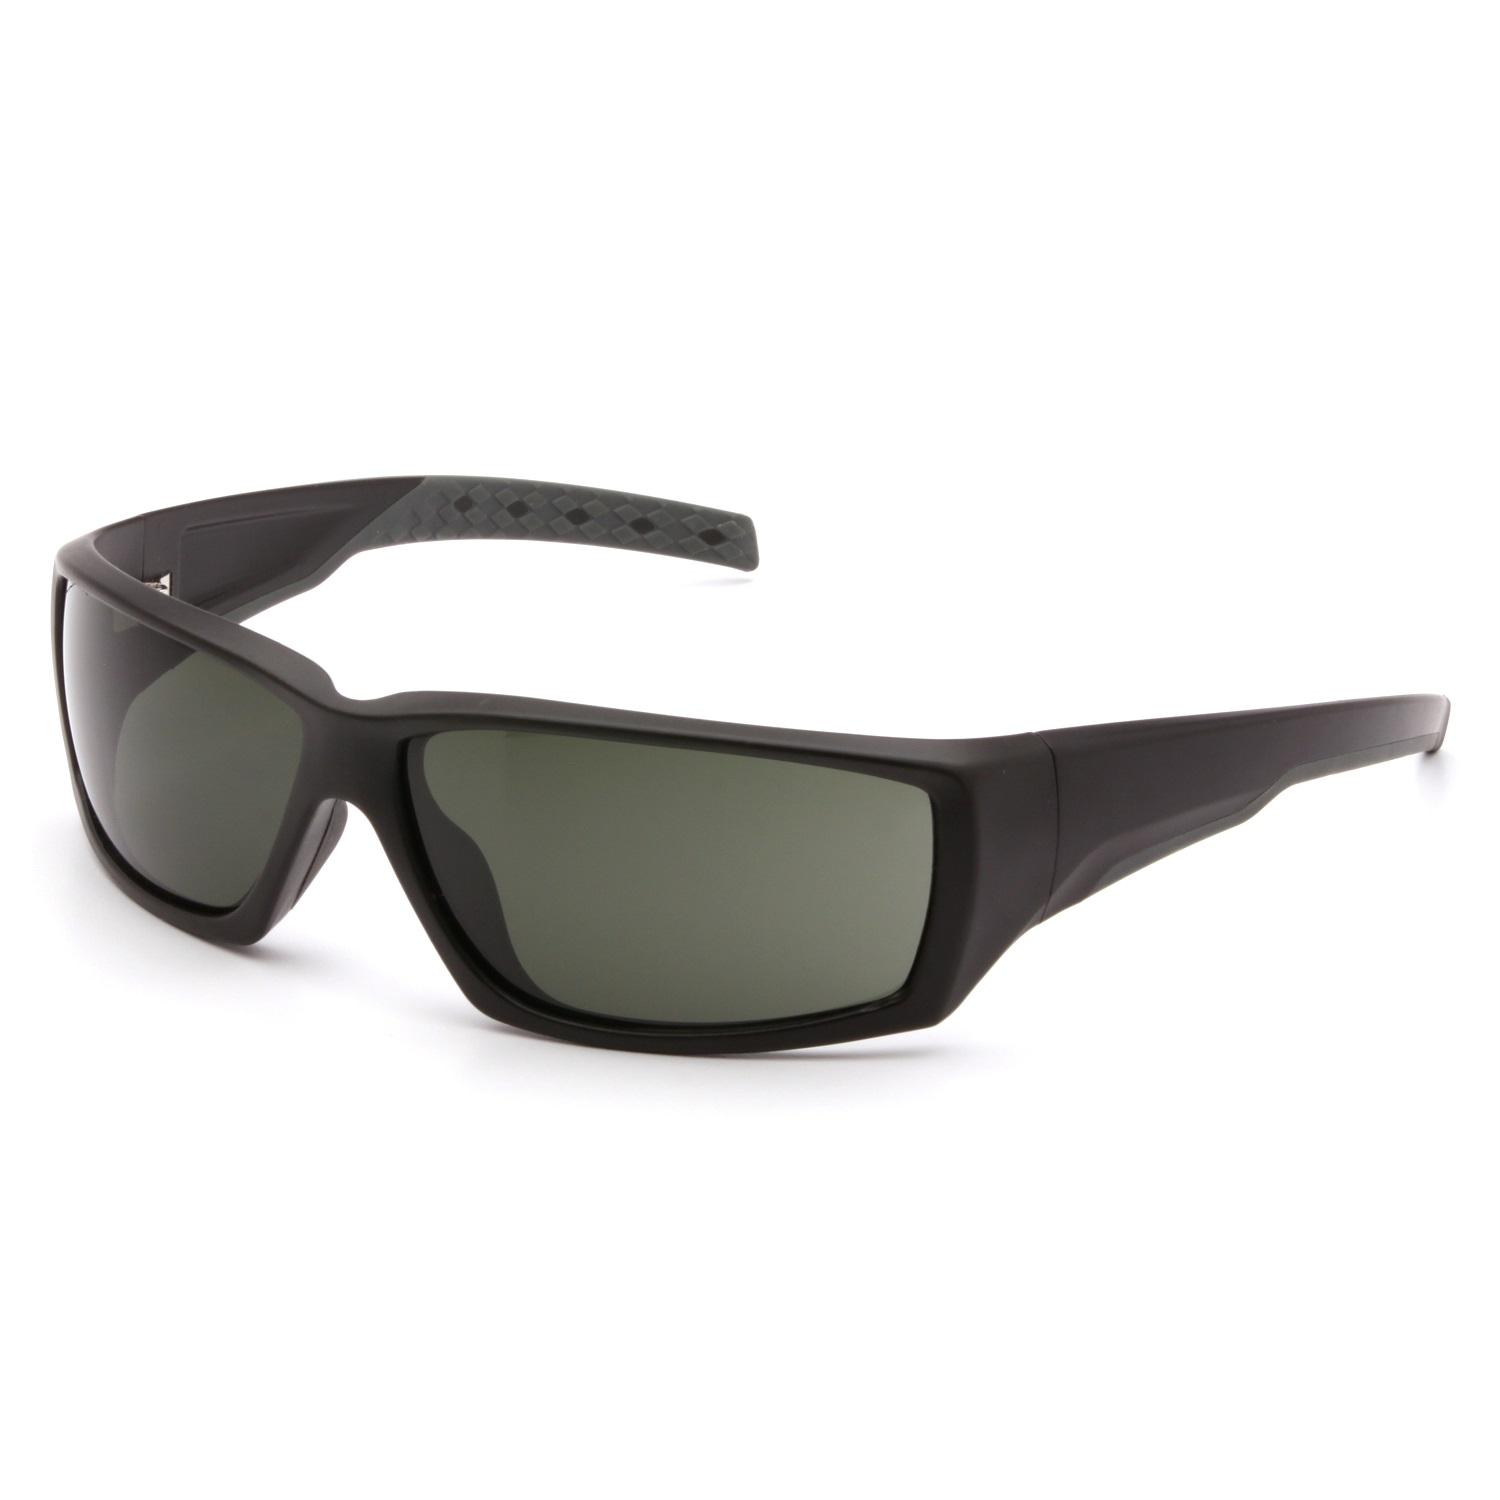 Venture Gear Overwatch Black Frame Smoke Green AF Lens